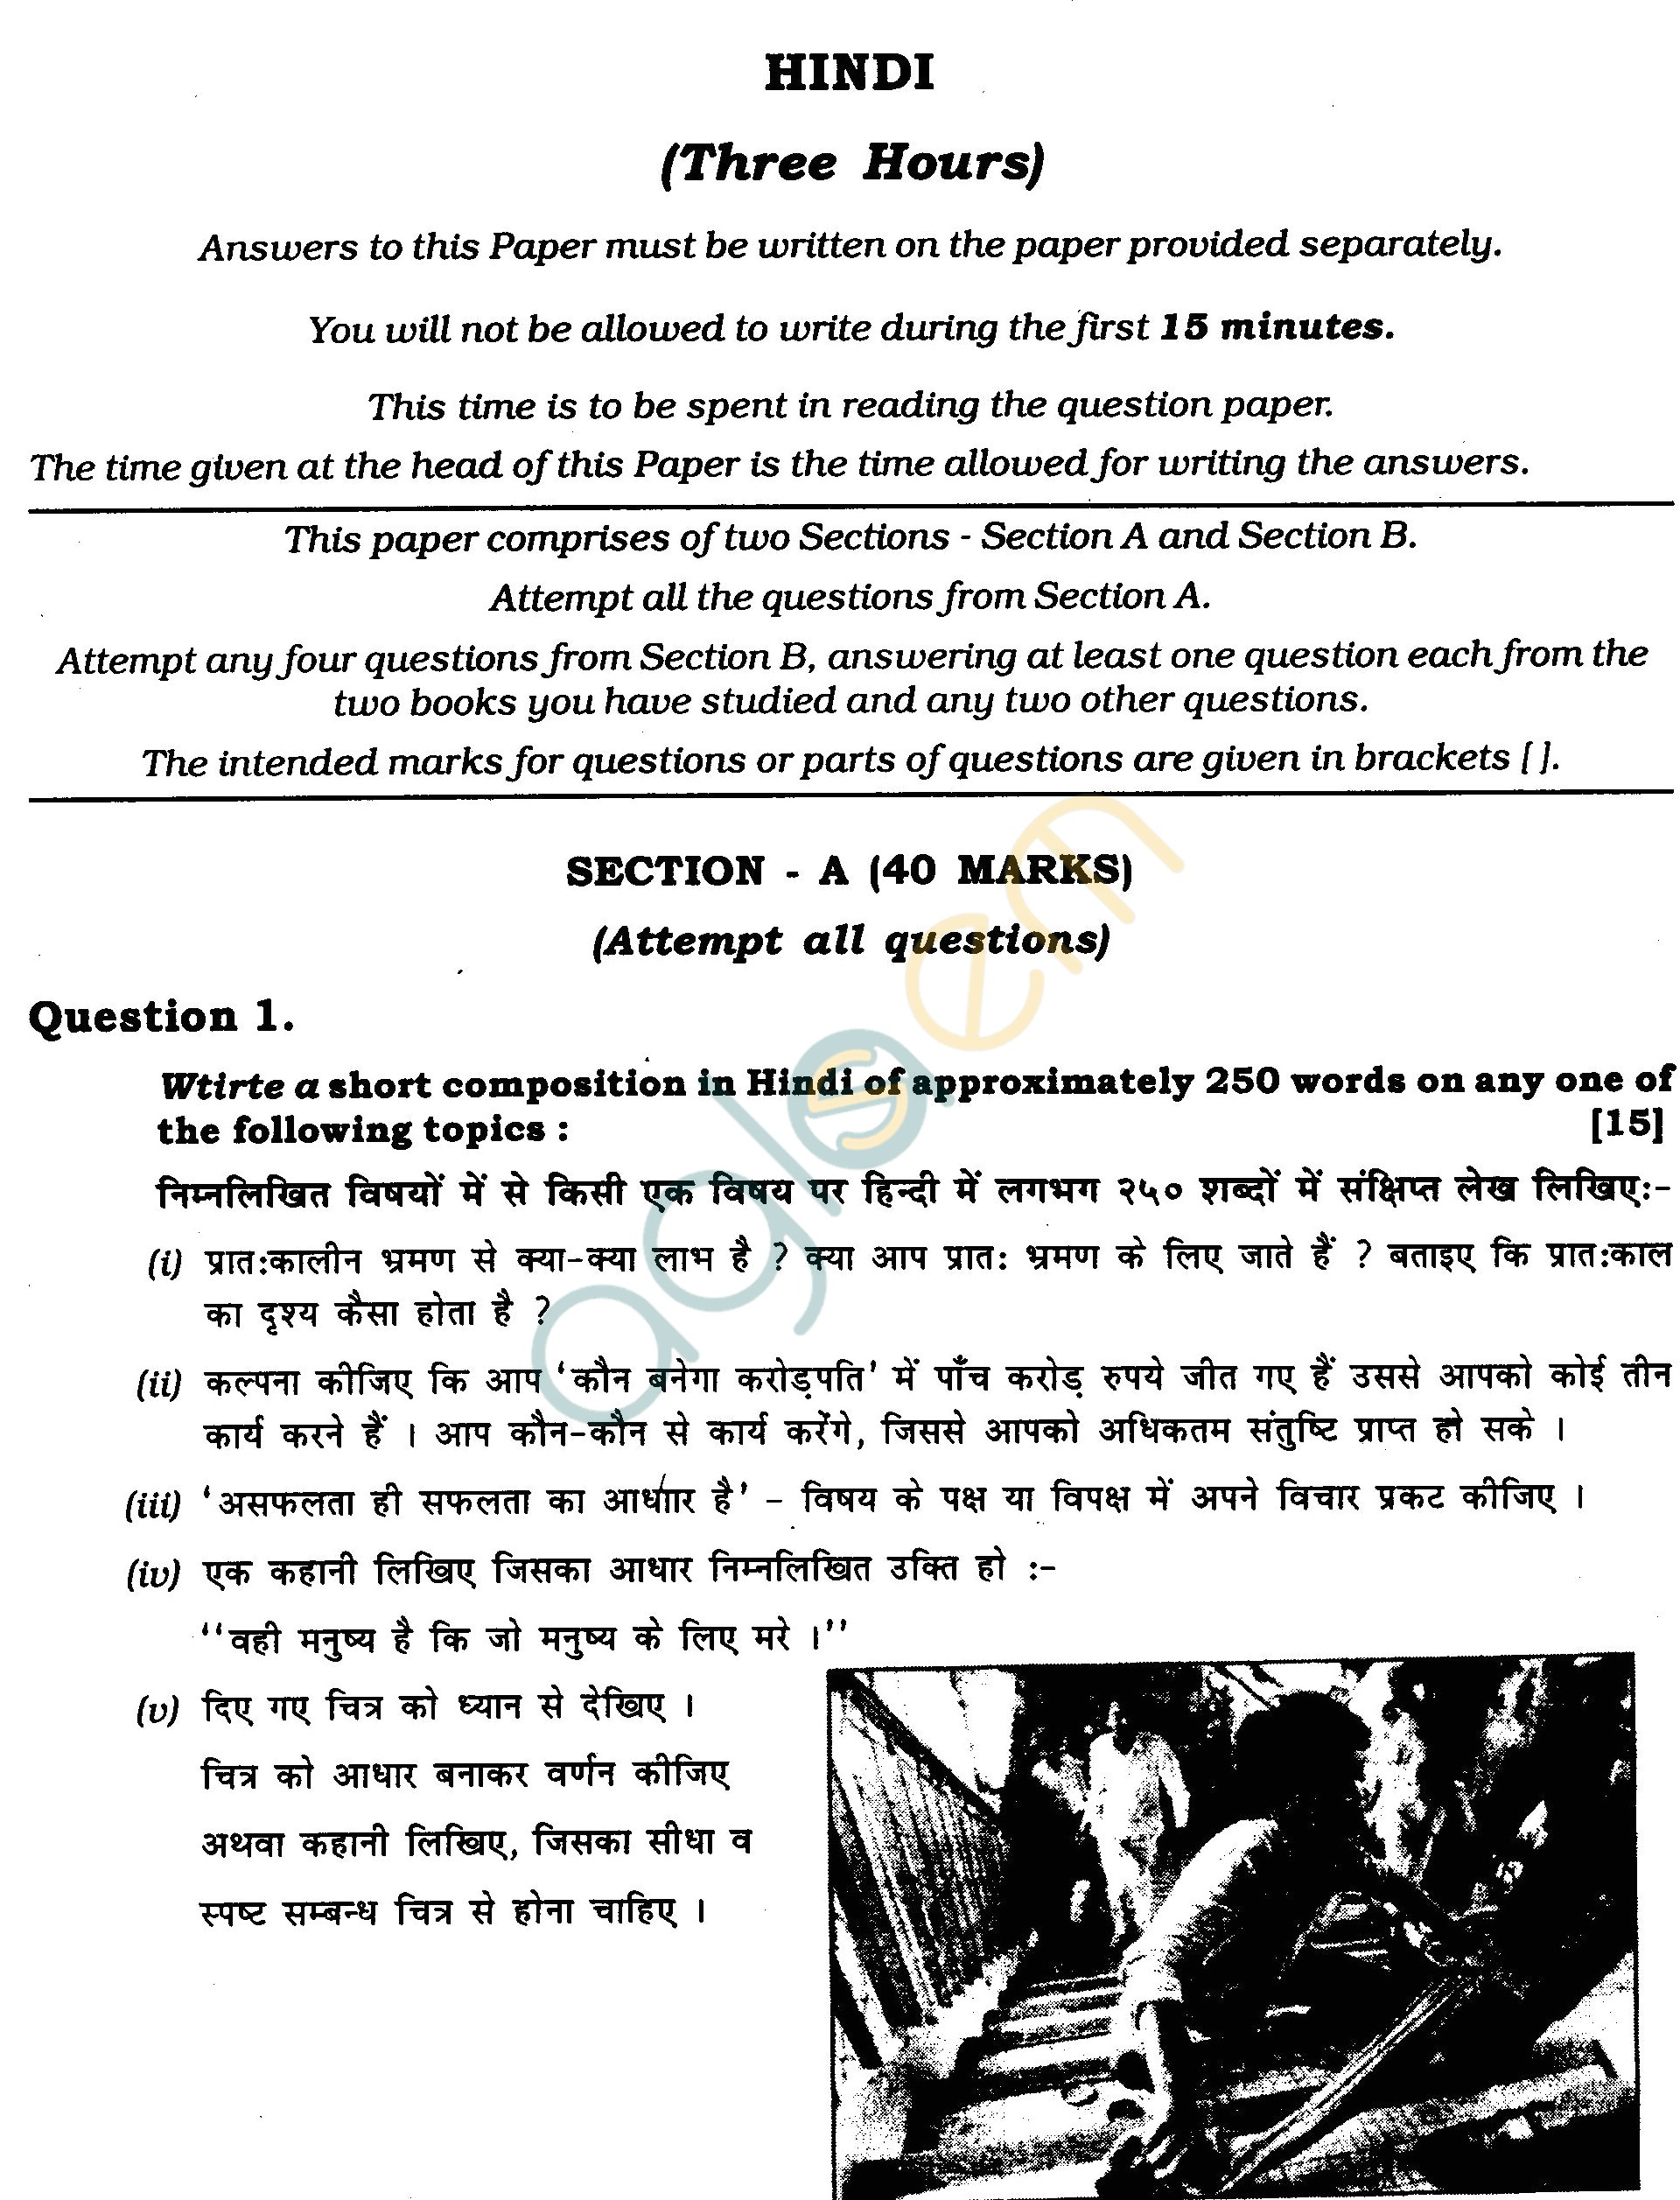 ICSE Class 10(X) Hindi Previous Years (Past) Question Papers and Sample Papers (PDF) from 1995-2018